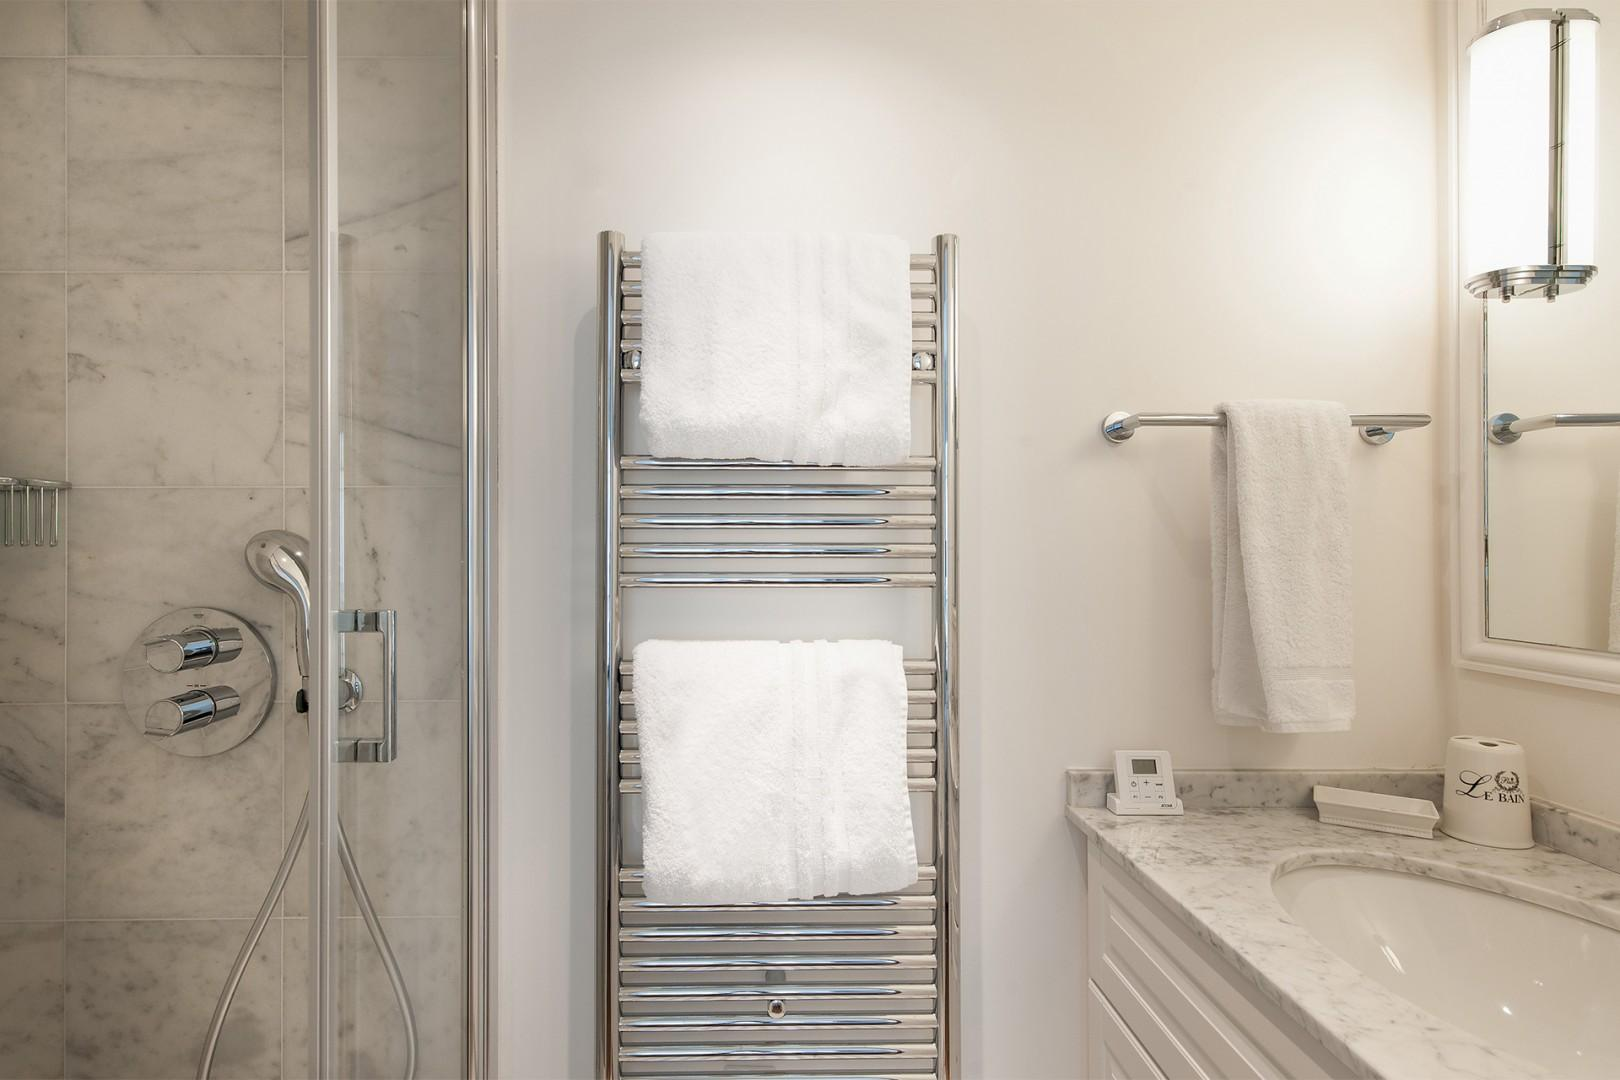 The heated towel rack lets you stay warm after your shower.